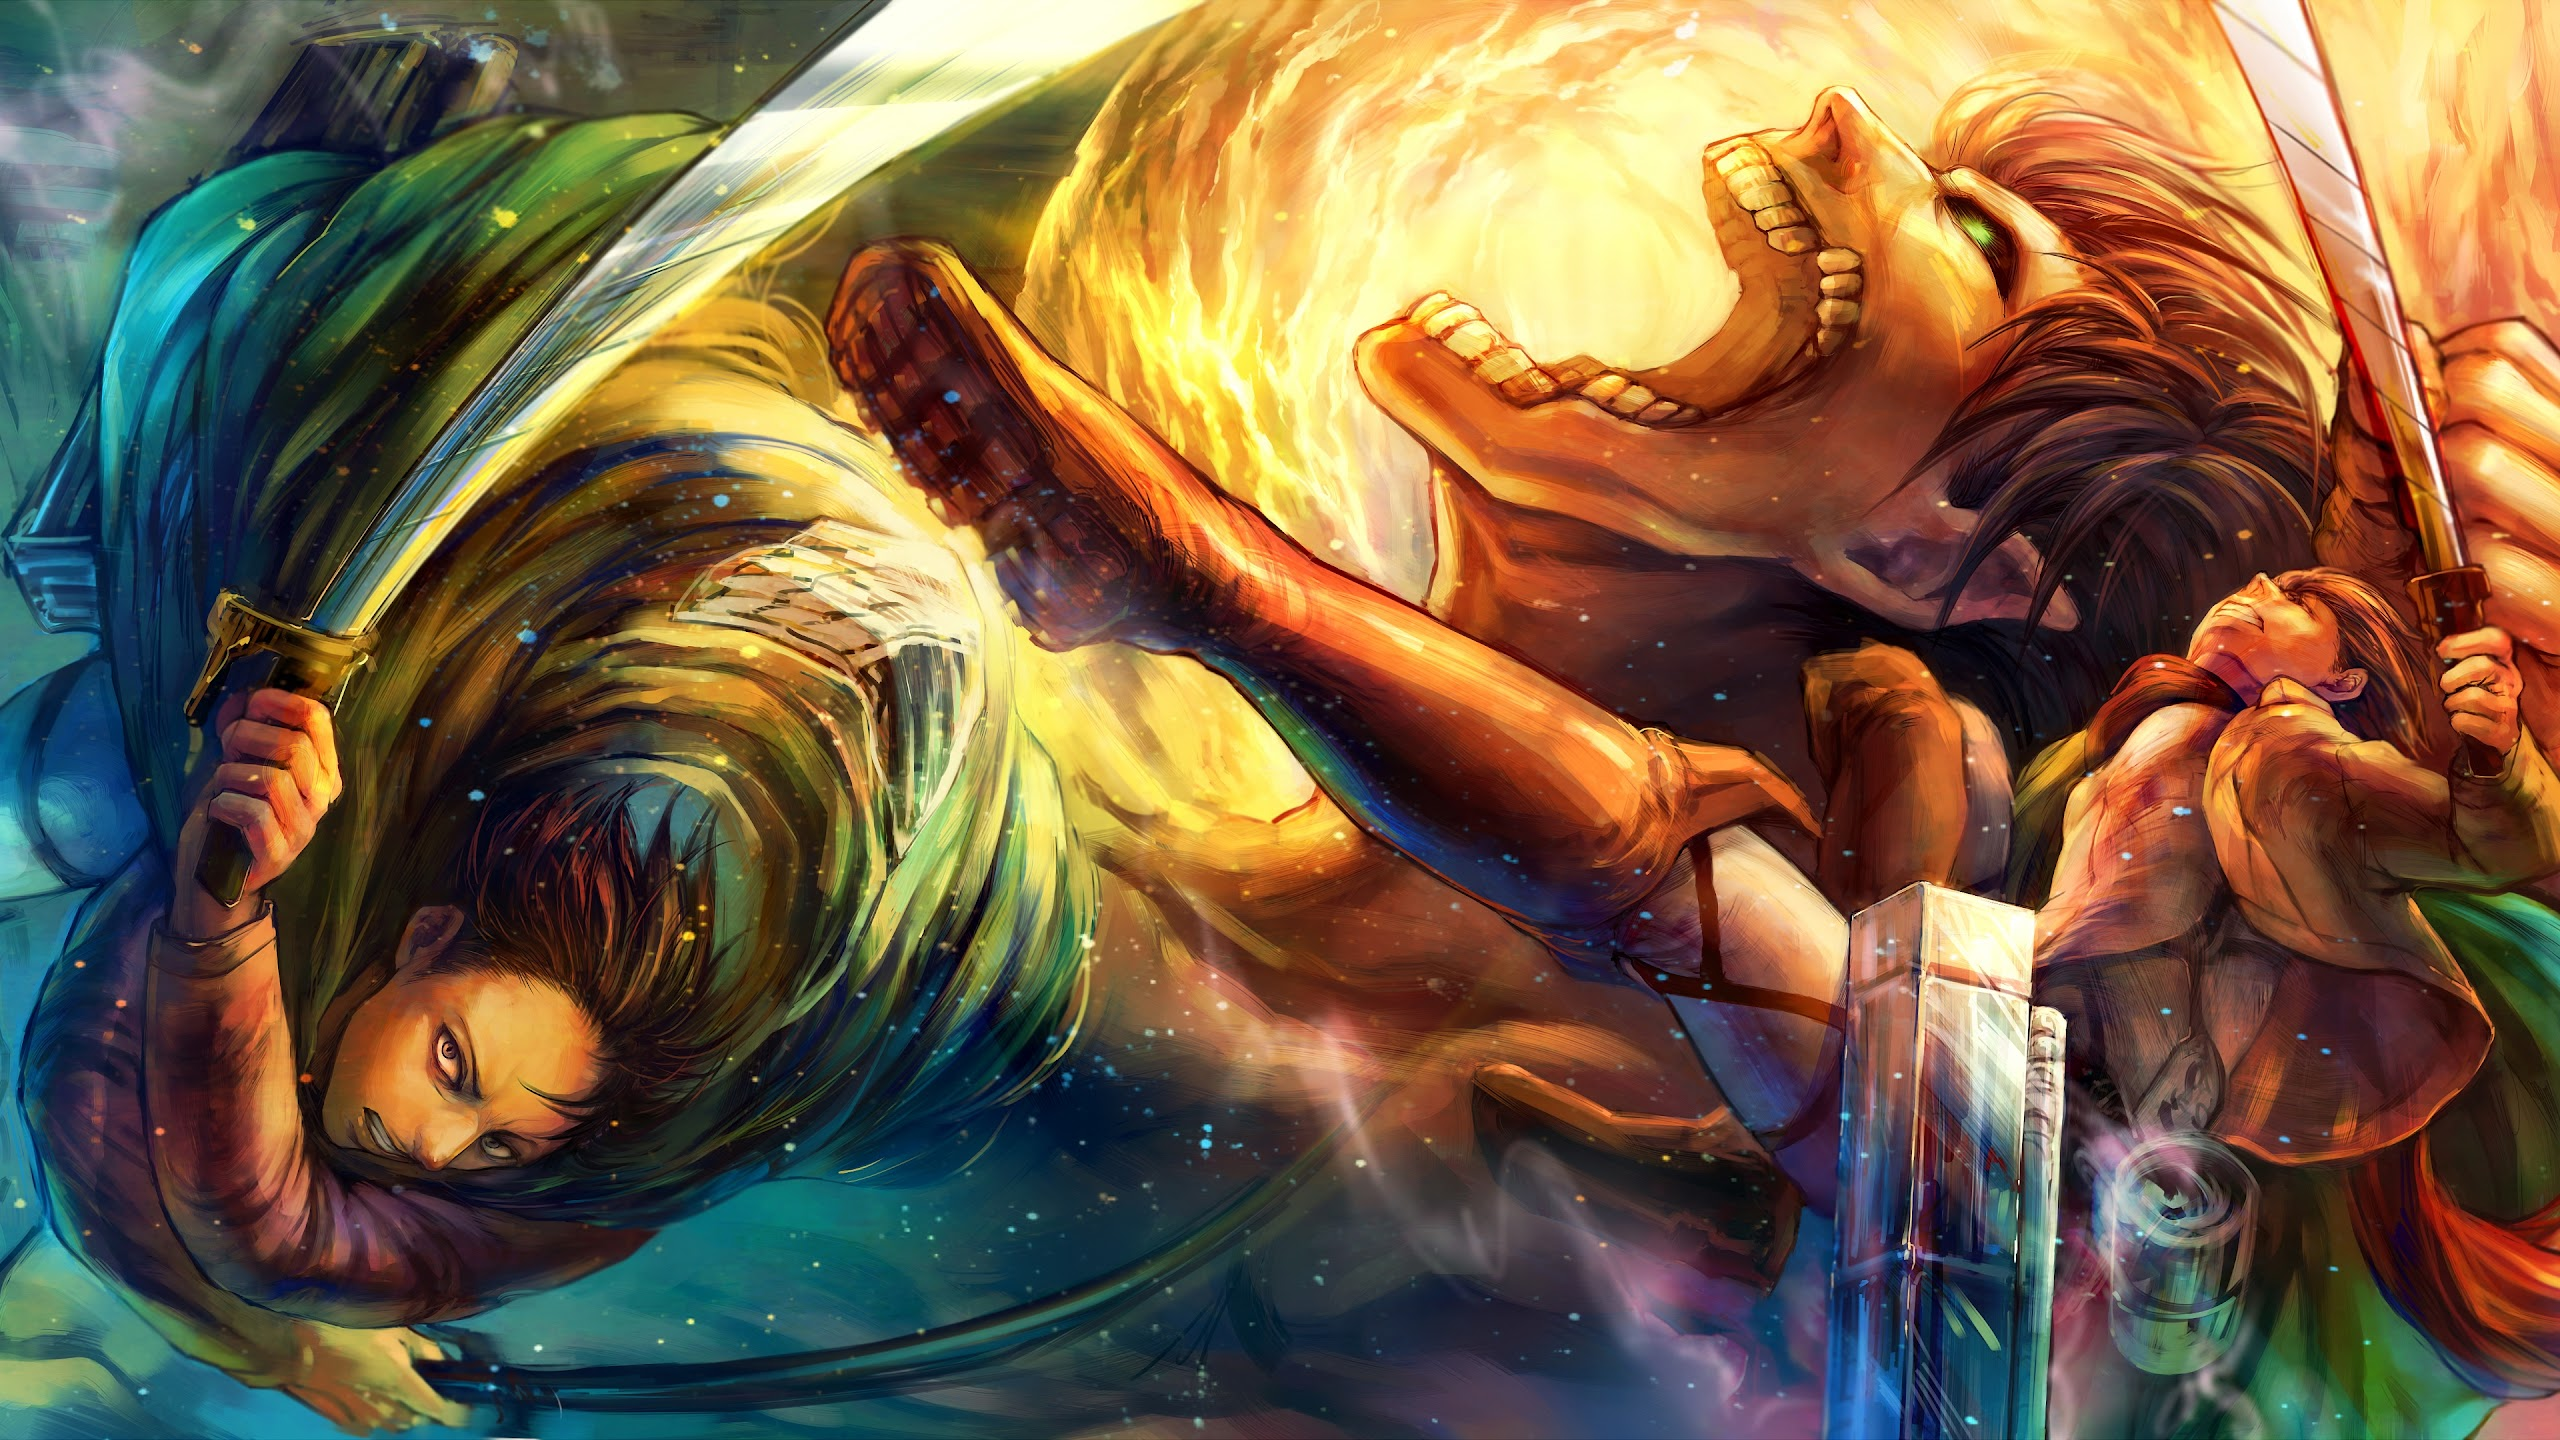 Attack on titan anime animated wallpaper and turn it into your cool desktop animated wallpaper. Levi, Attack Titan, Attack on Titan, 4K, #78 Wallpaper